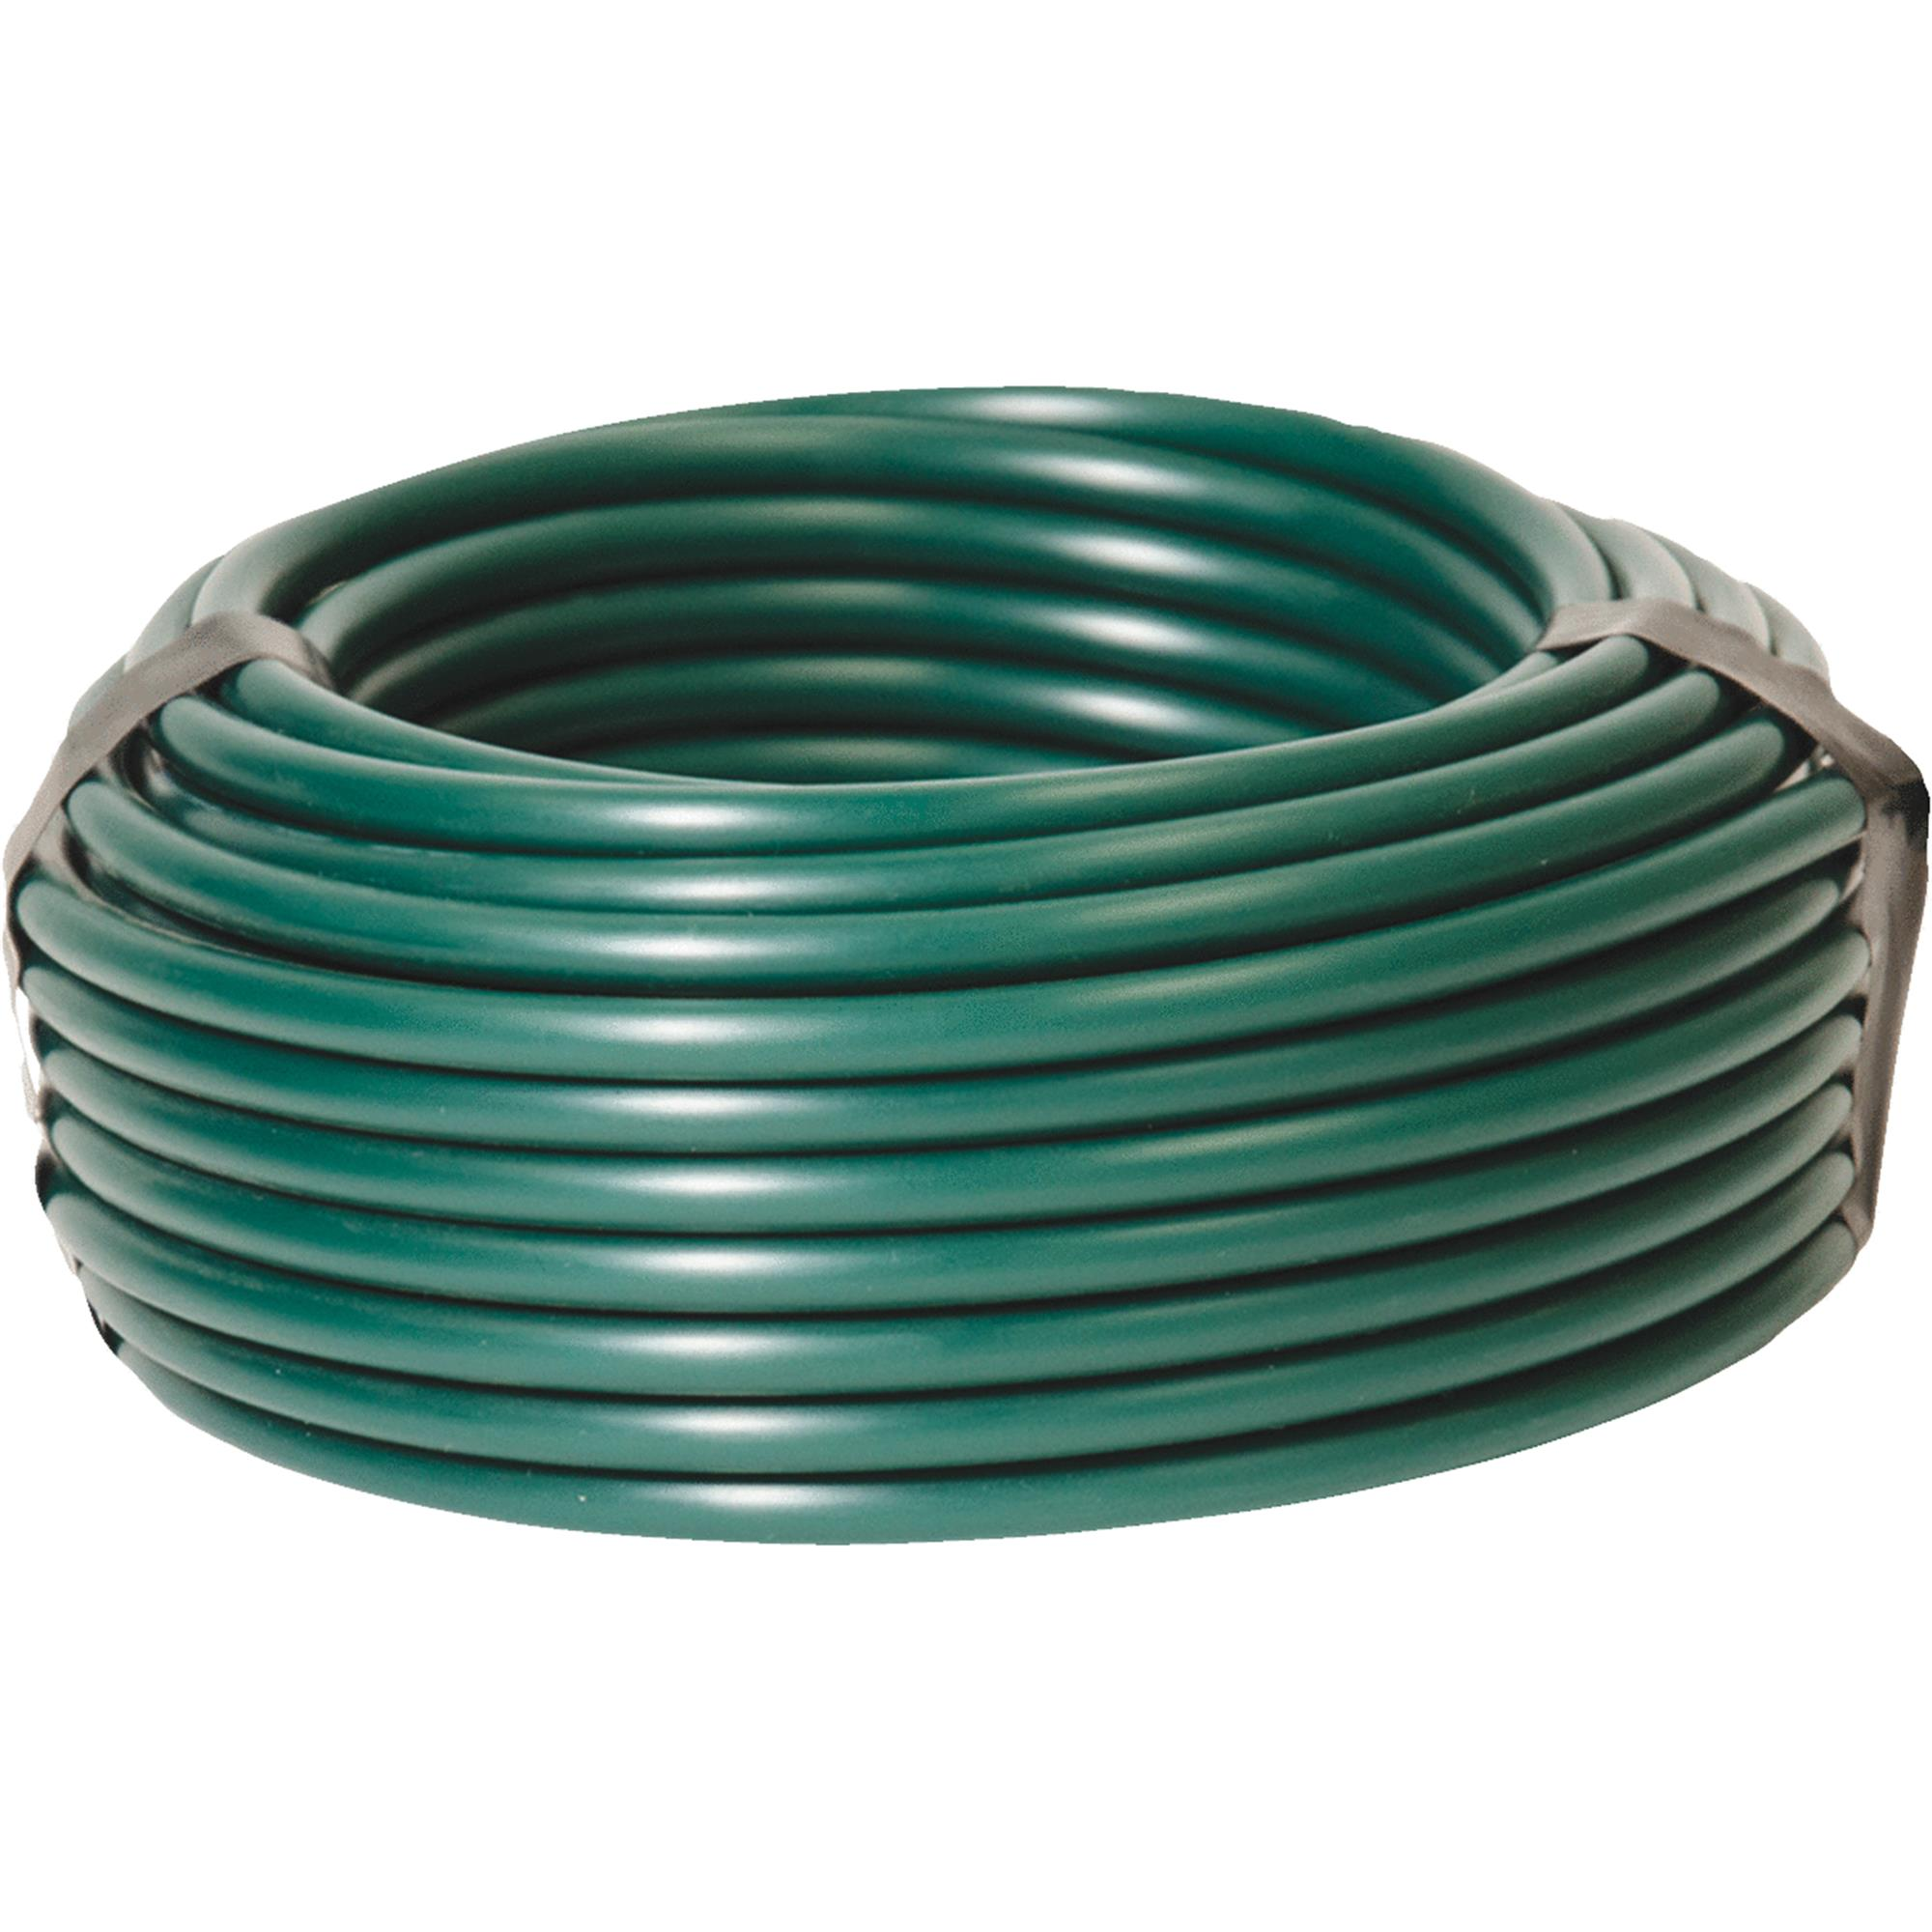 "***DISCONTINUED BY VENDOR 7-28-2016*** Raindrip 1/4"" Tubing, 50' Coil- Green"